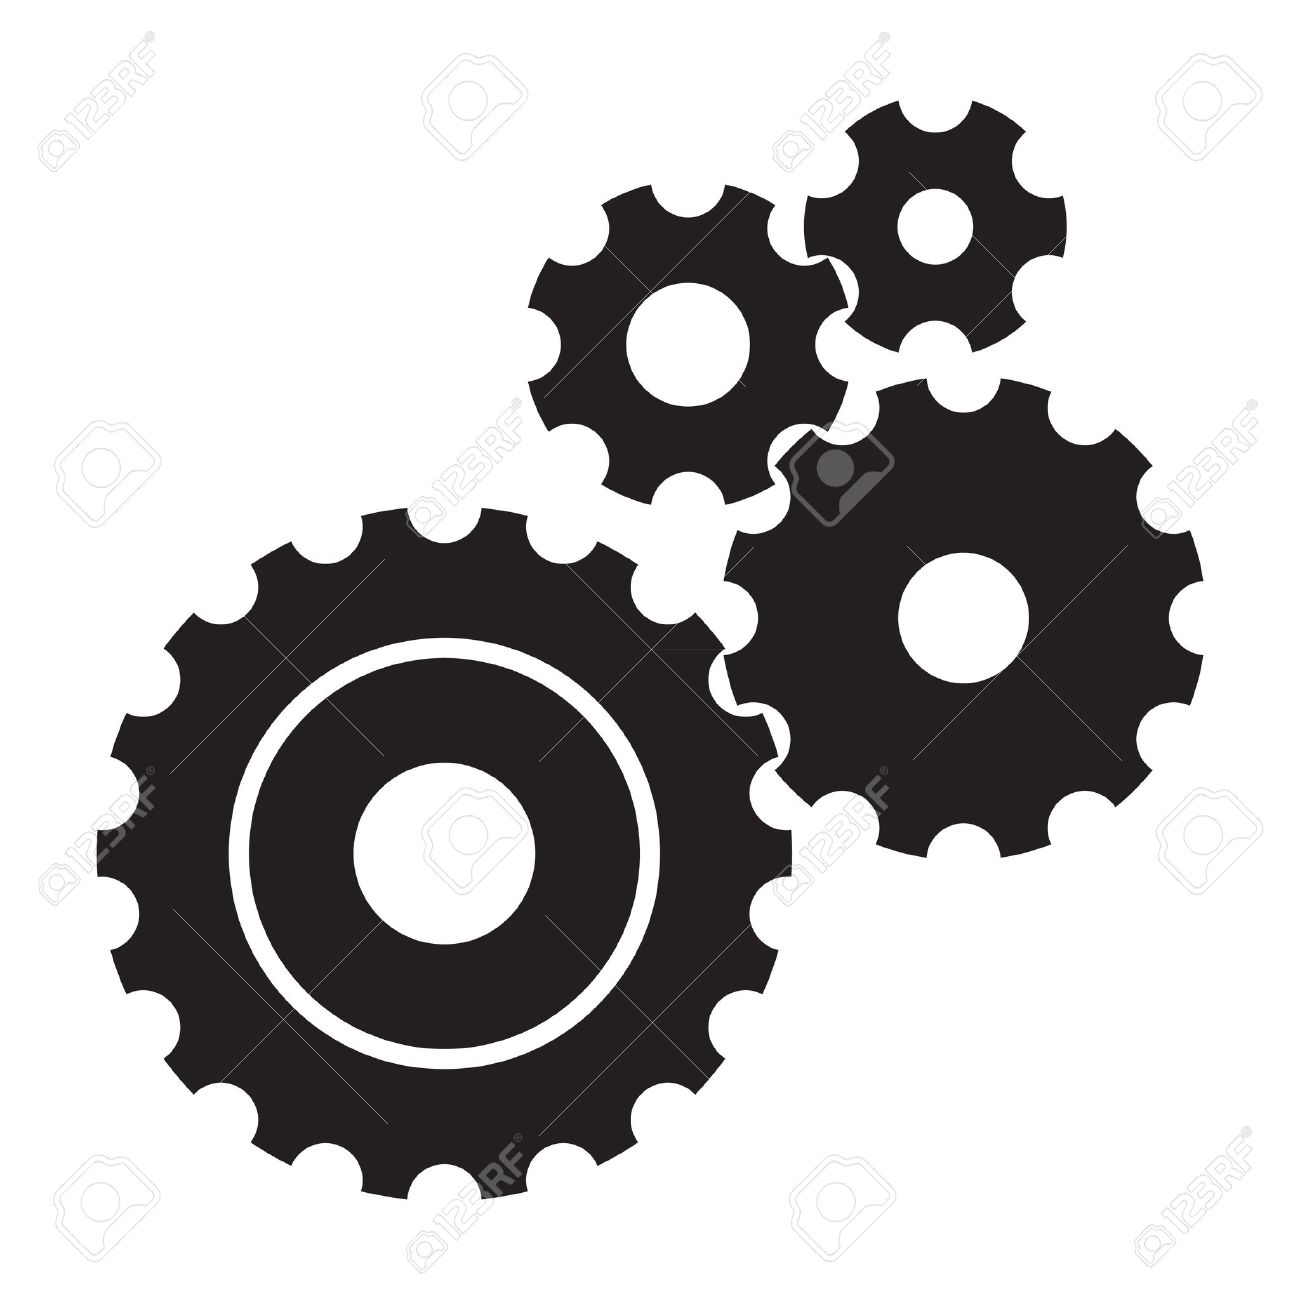 Gear clipart black and white graphic black and white Gear clipart black and white 2 » Clipart Station graphic black and white